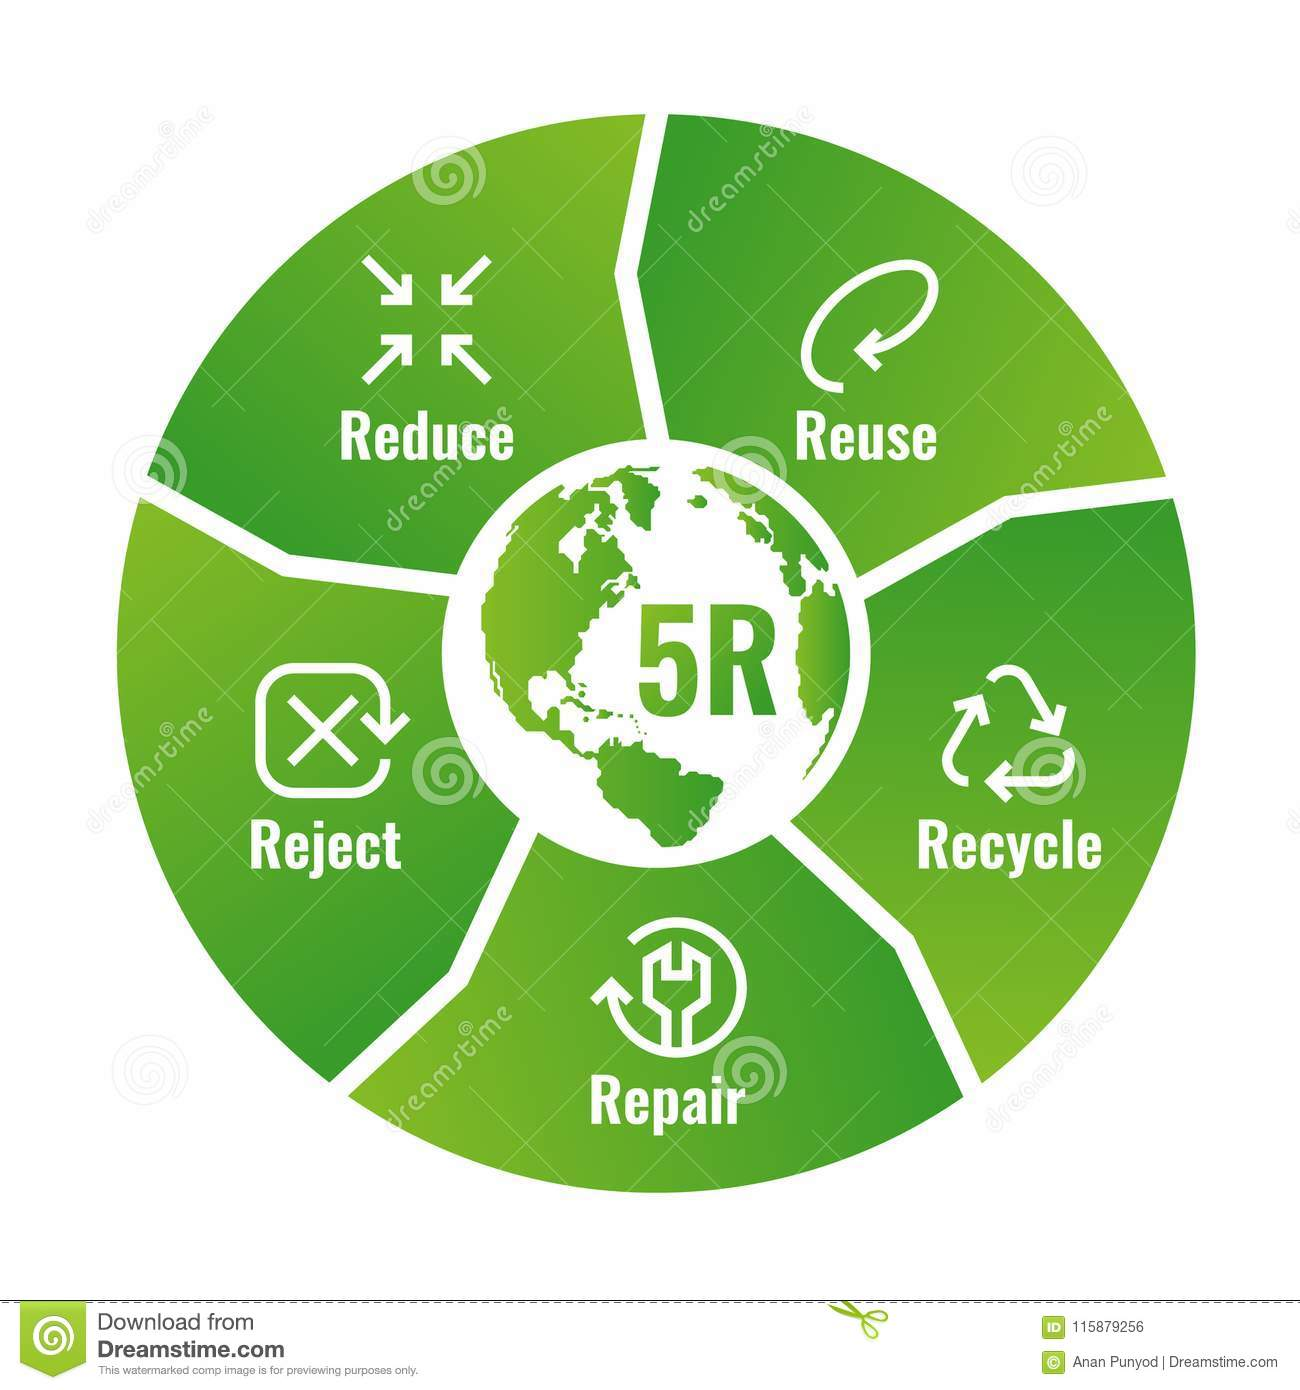 hight resolution of 5r chart reduce reuse recycle repair reject with icon sign and text sign in green circle block diagram around world map vector illustration design